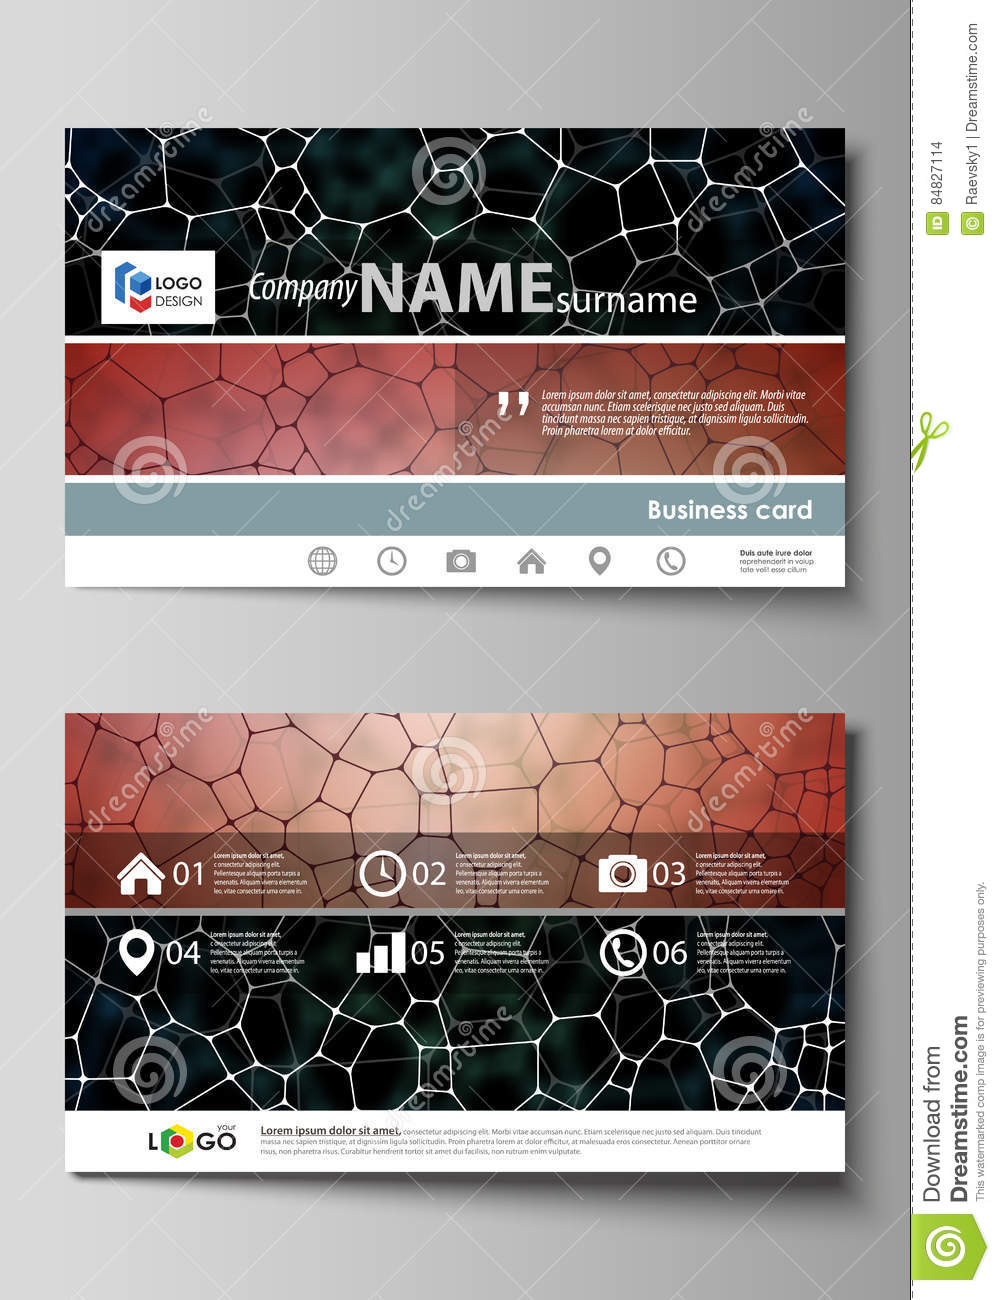 Business Card Templates Easy Editable Layout Abstract Vector - Editable business card templates free